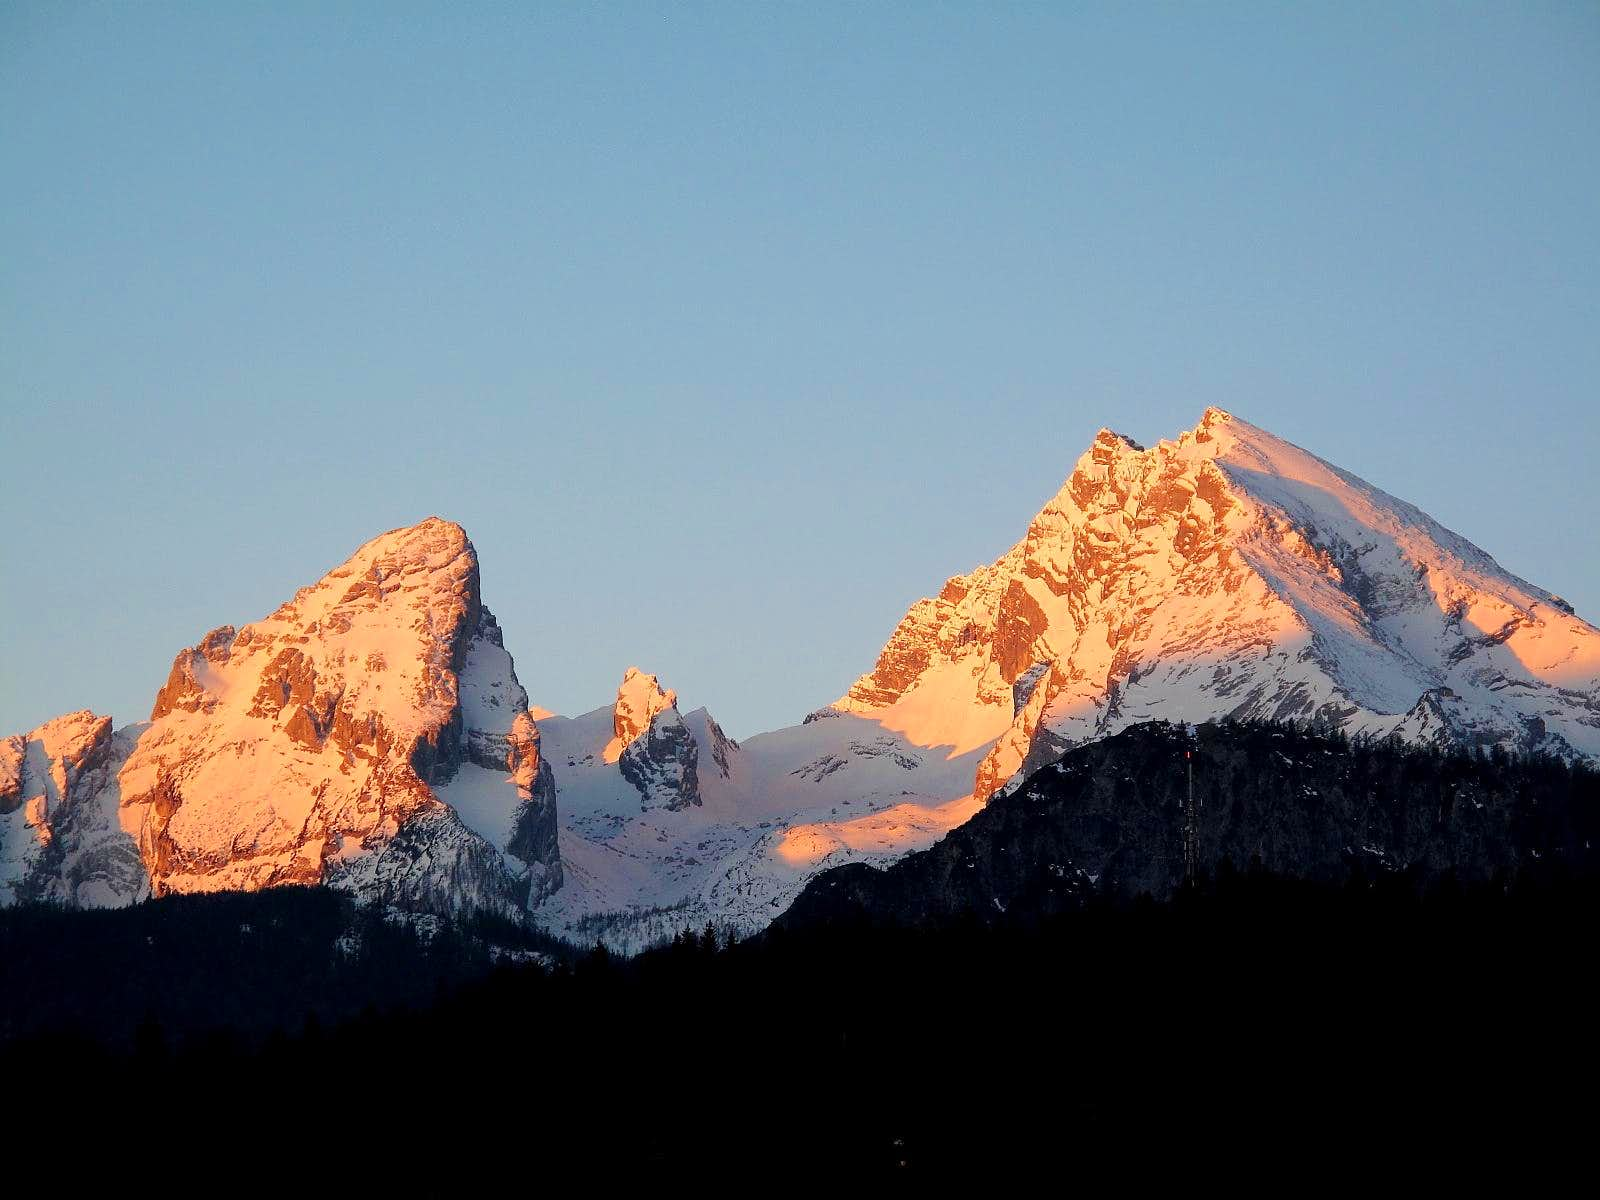 Early morning light on the Watzmann